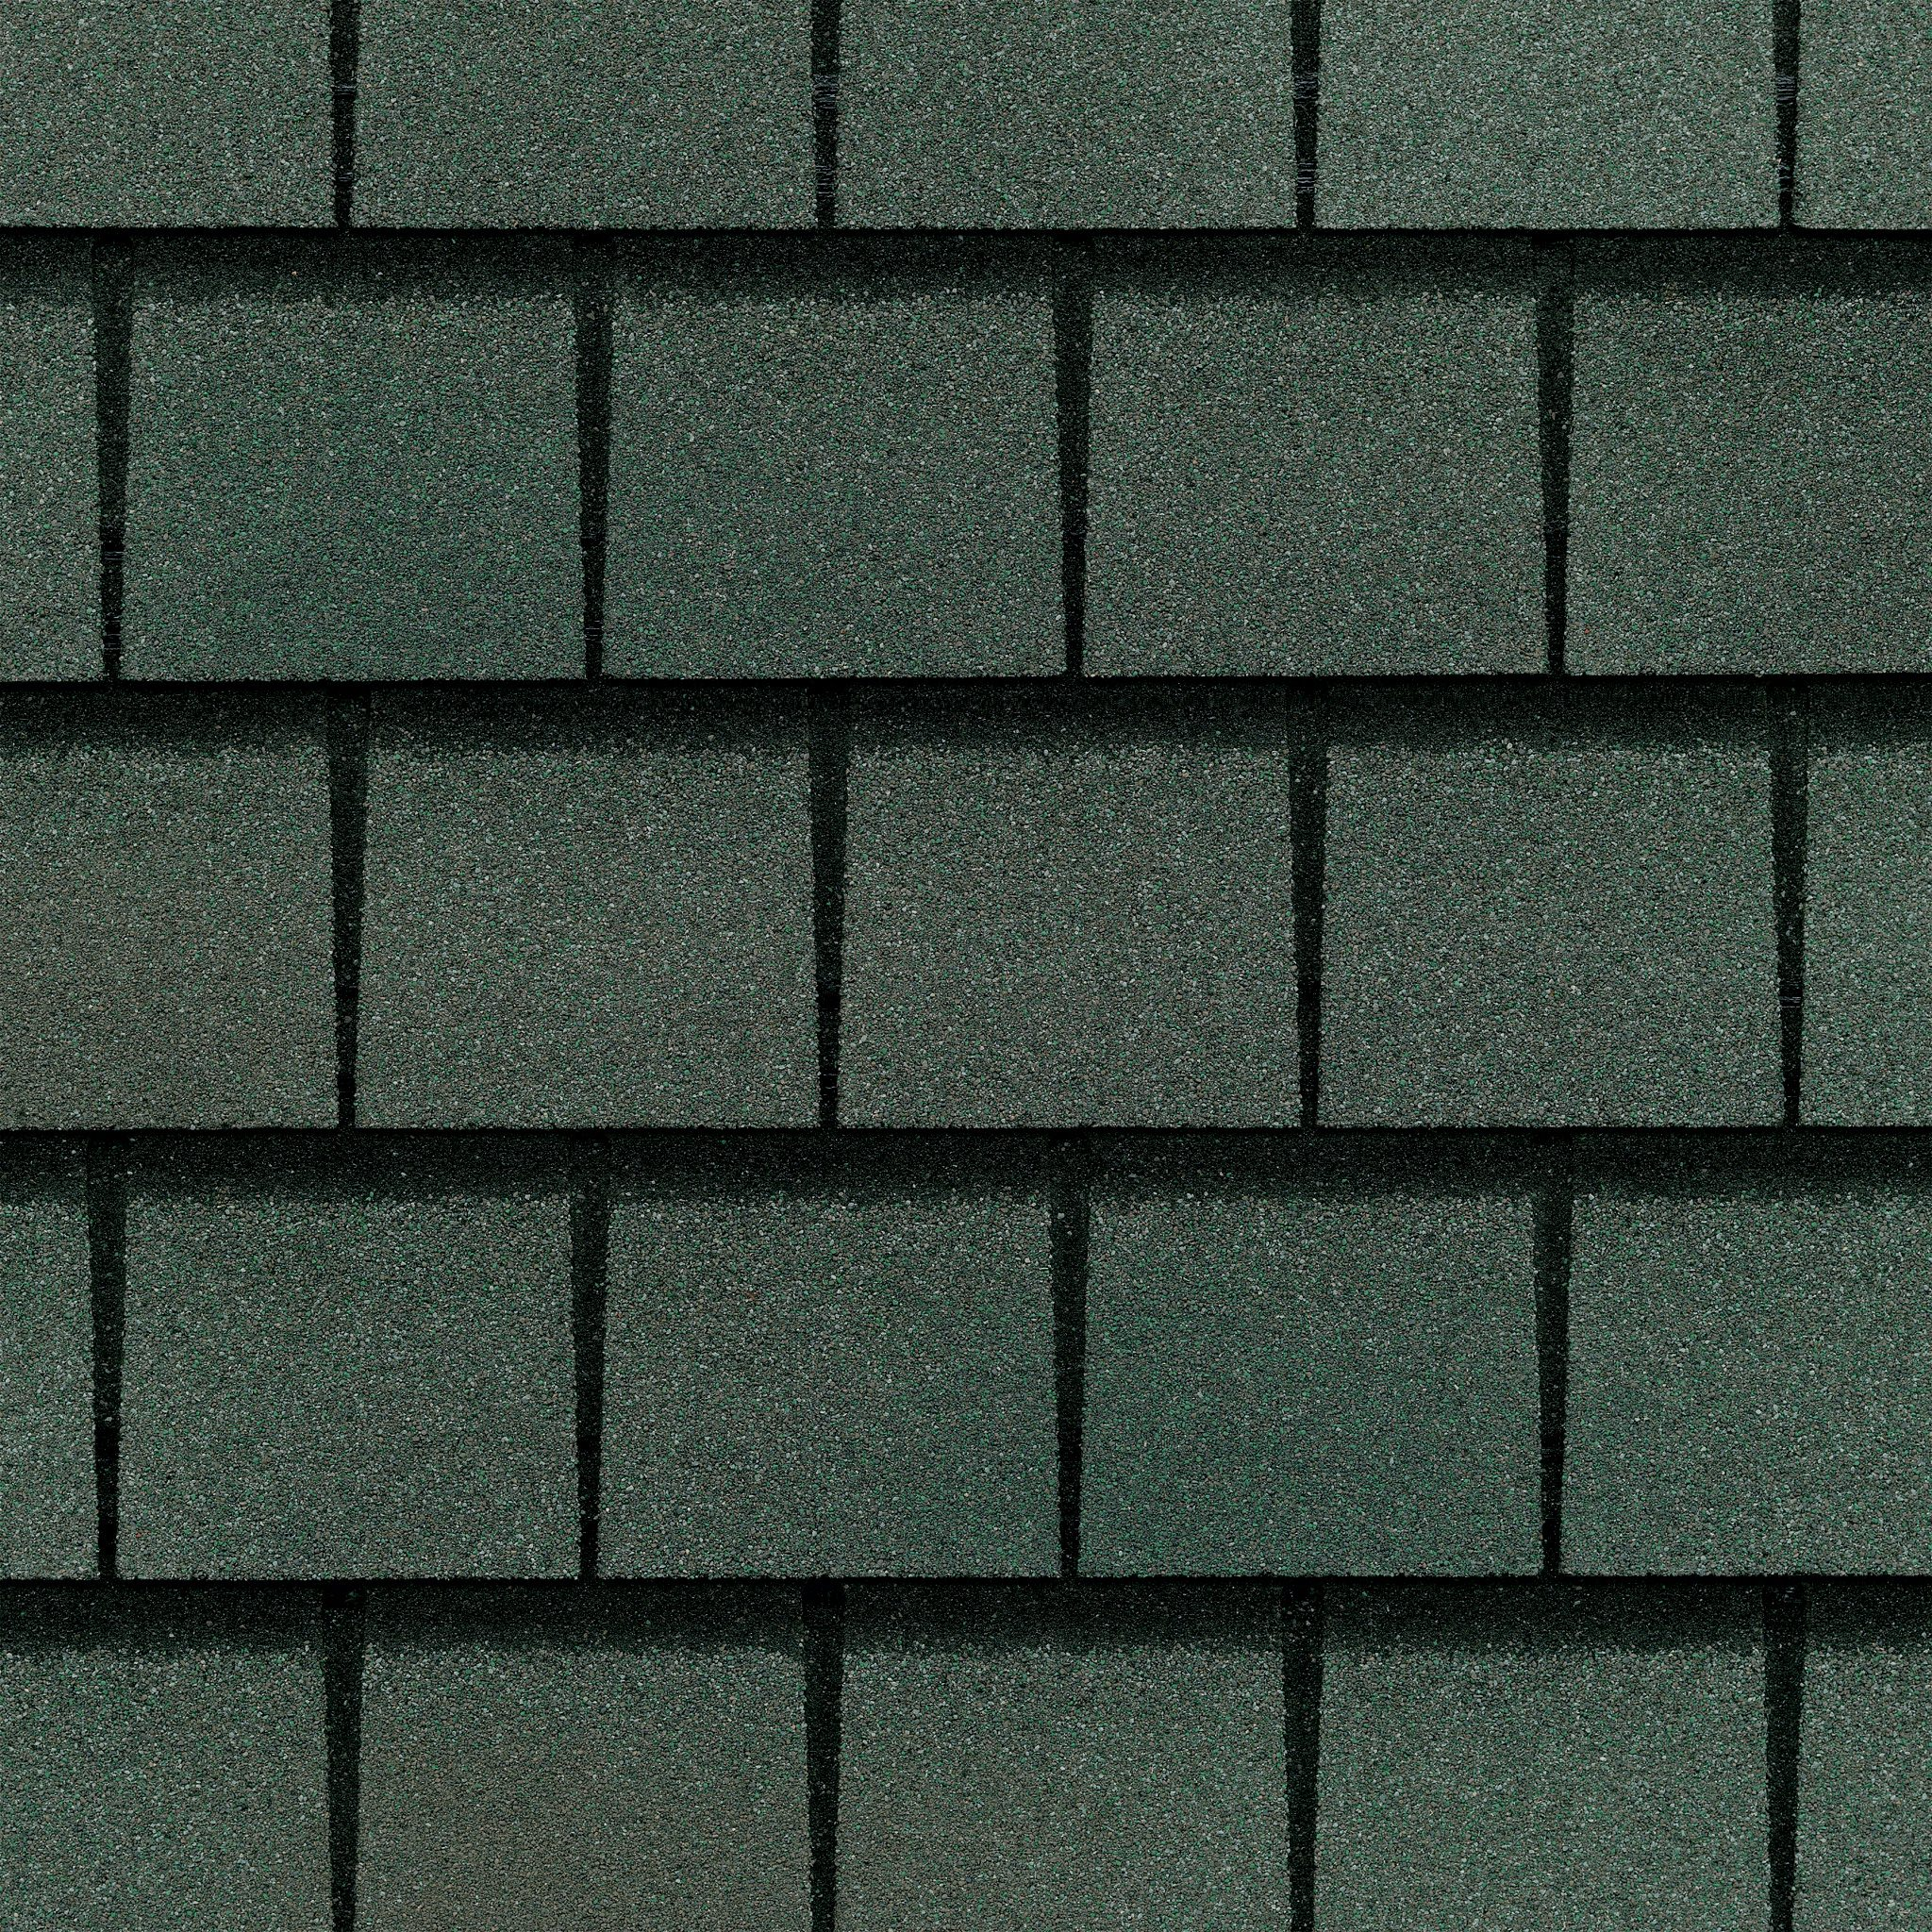 Close up photo of GAF's Slateline Emerald Green shingle swatch